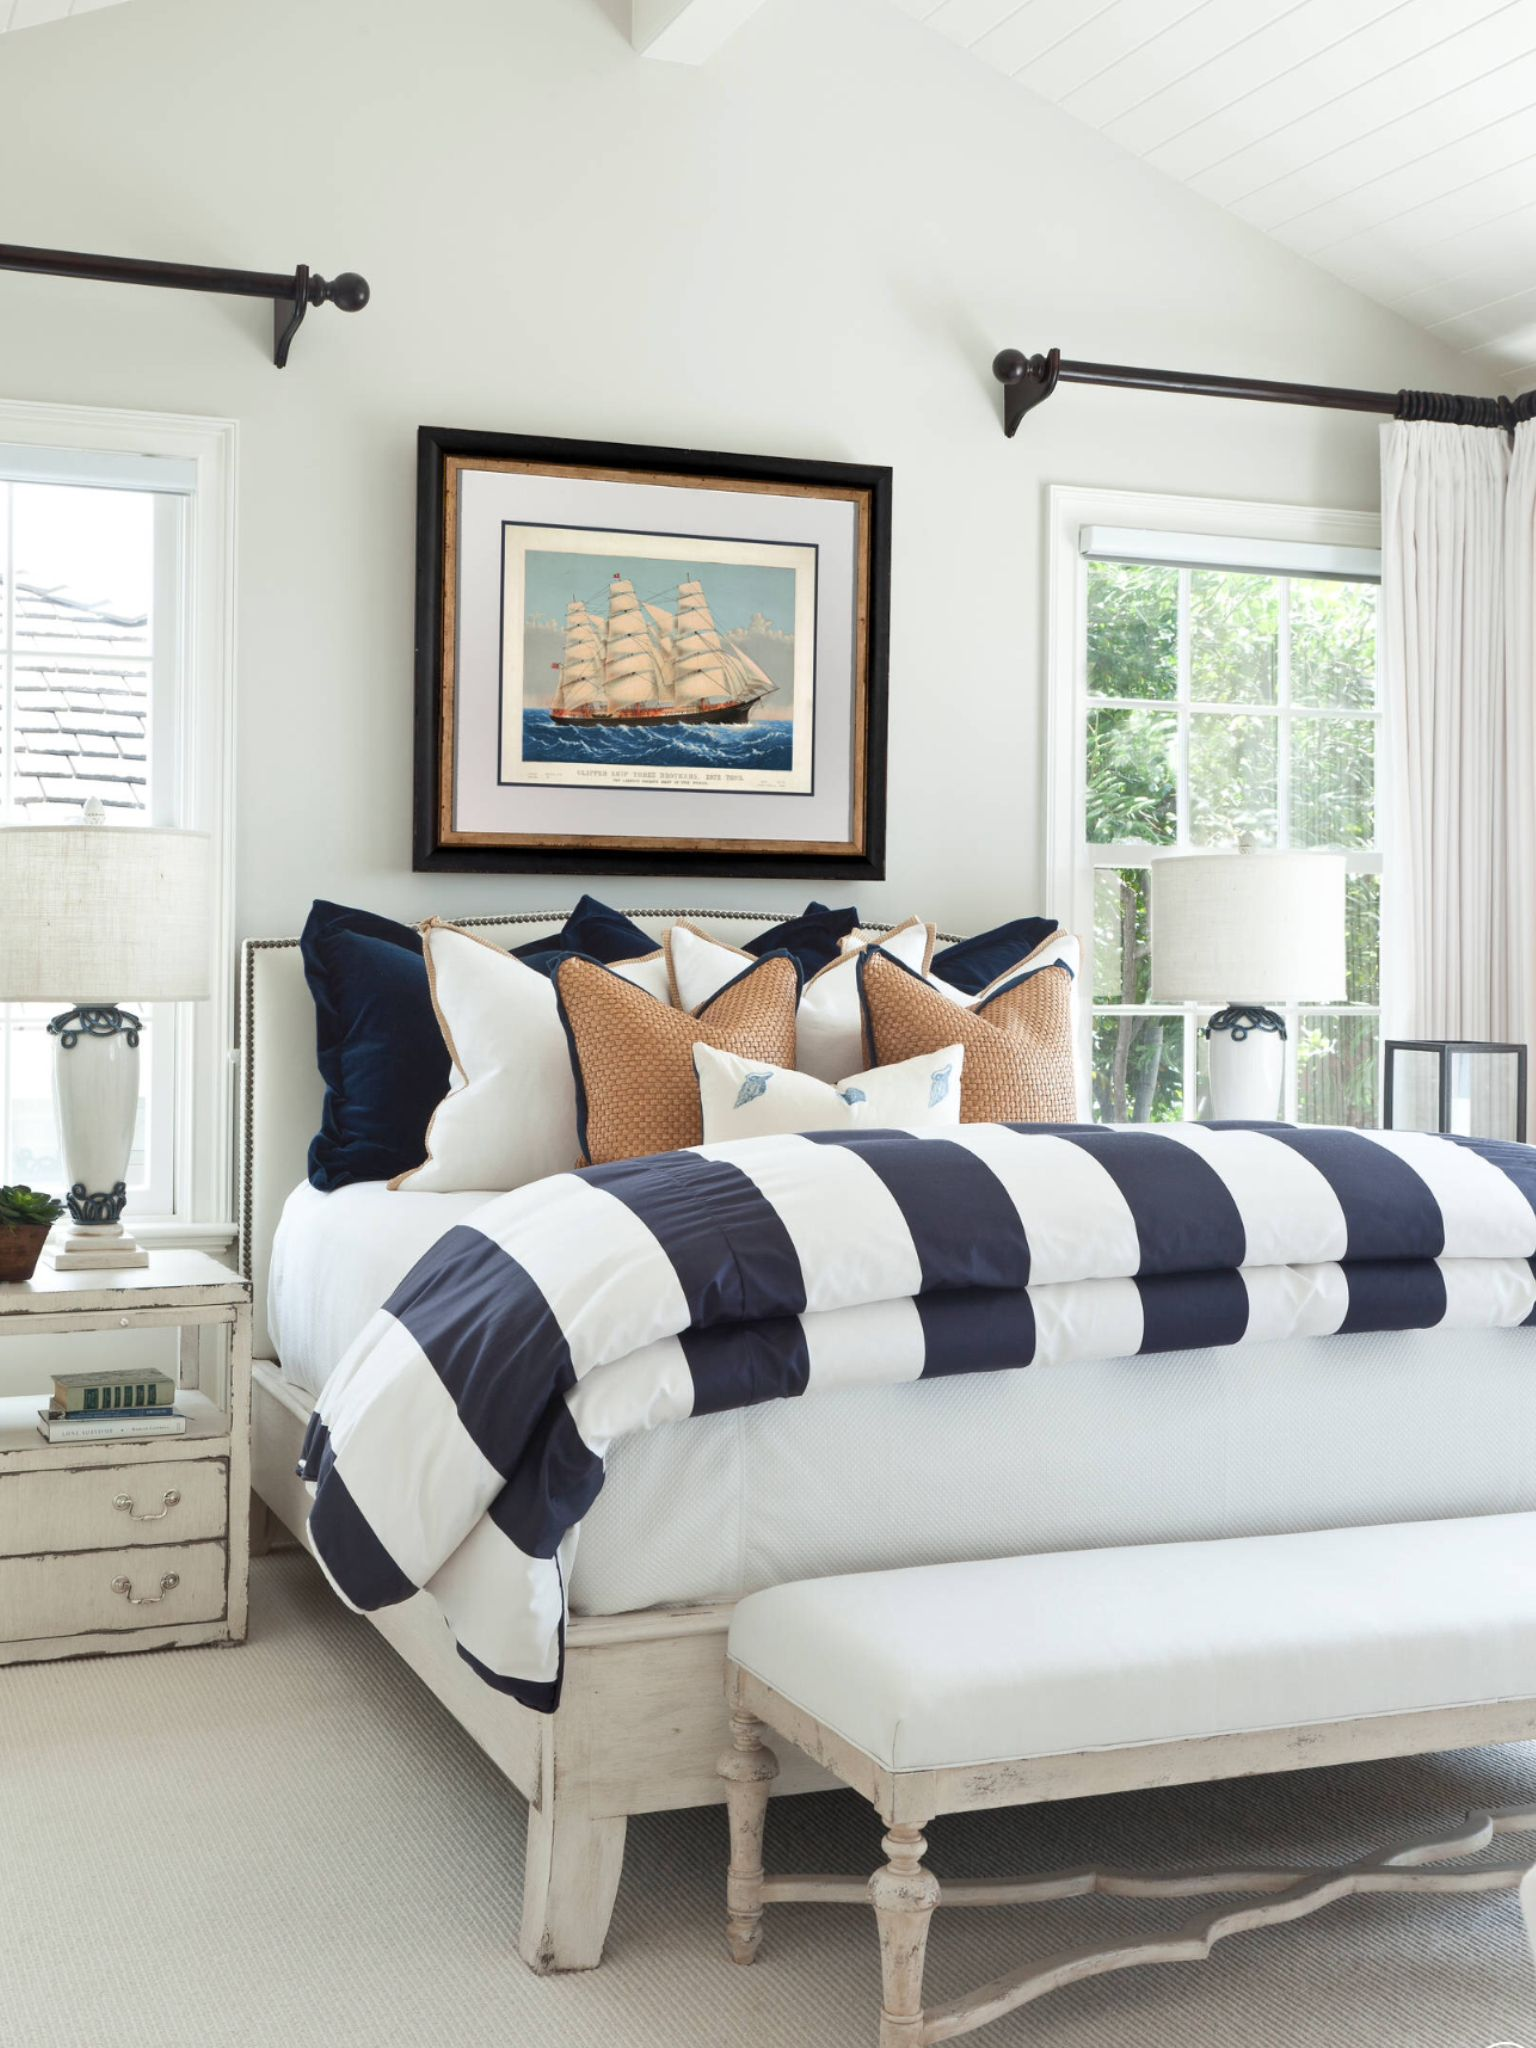 nautical bedroom white and blue striped bedspread dark curtain rods with white curtains framed art over bed - Nautical Bedroom